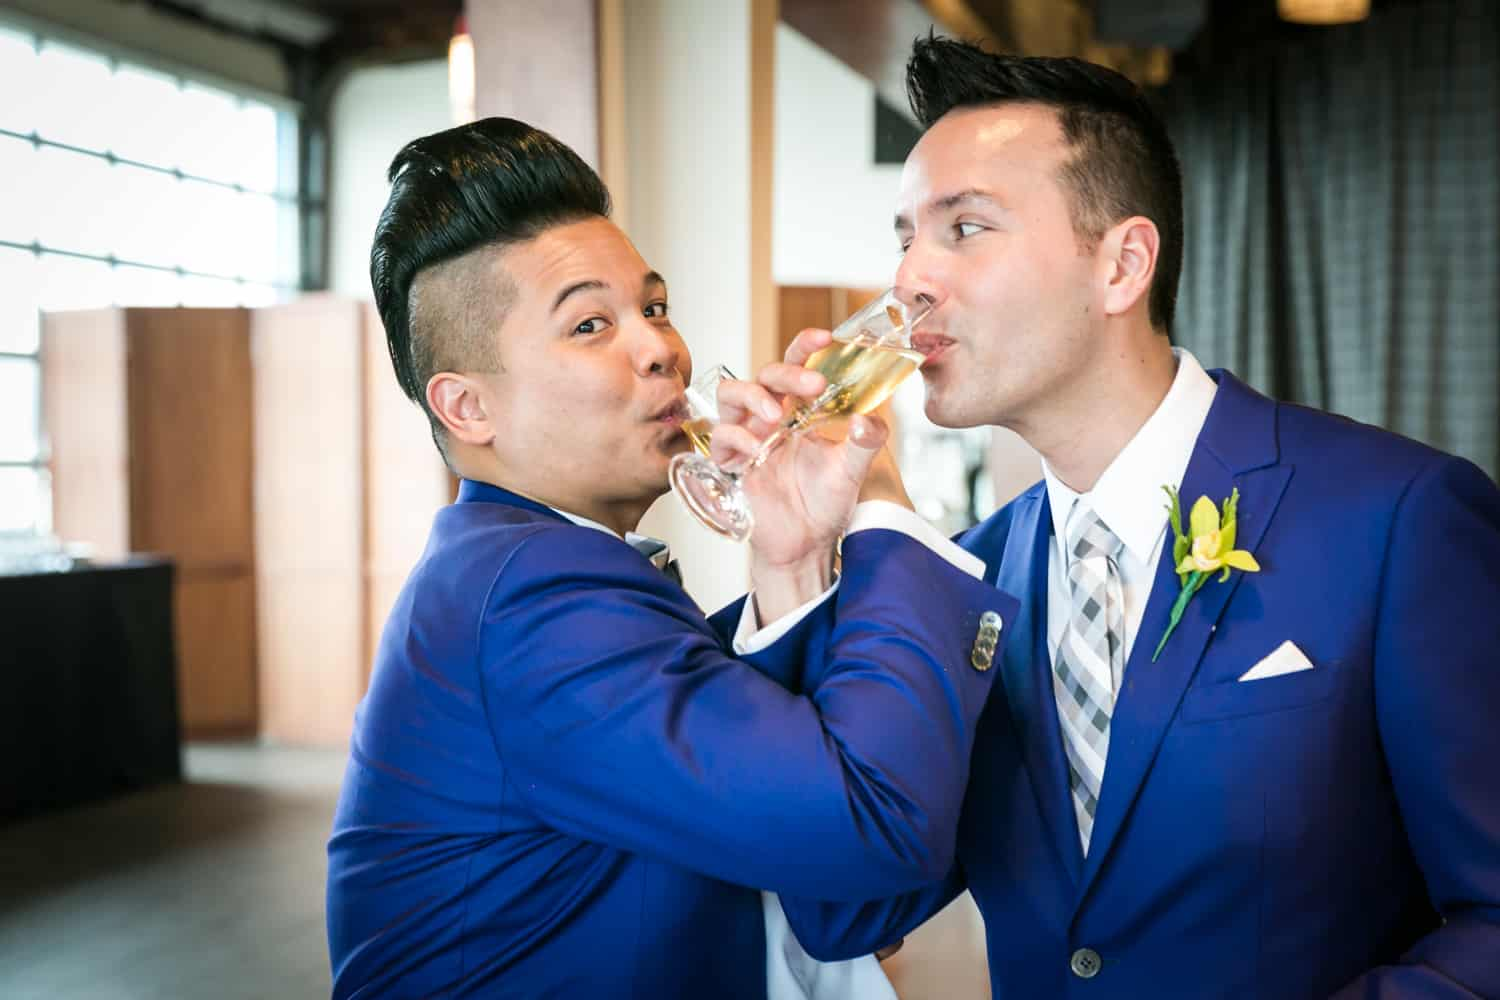 Two grooms drinking champagne through entwined arms